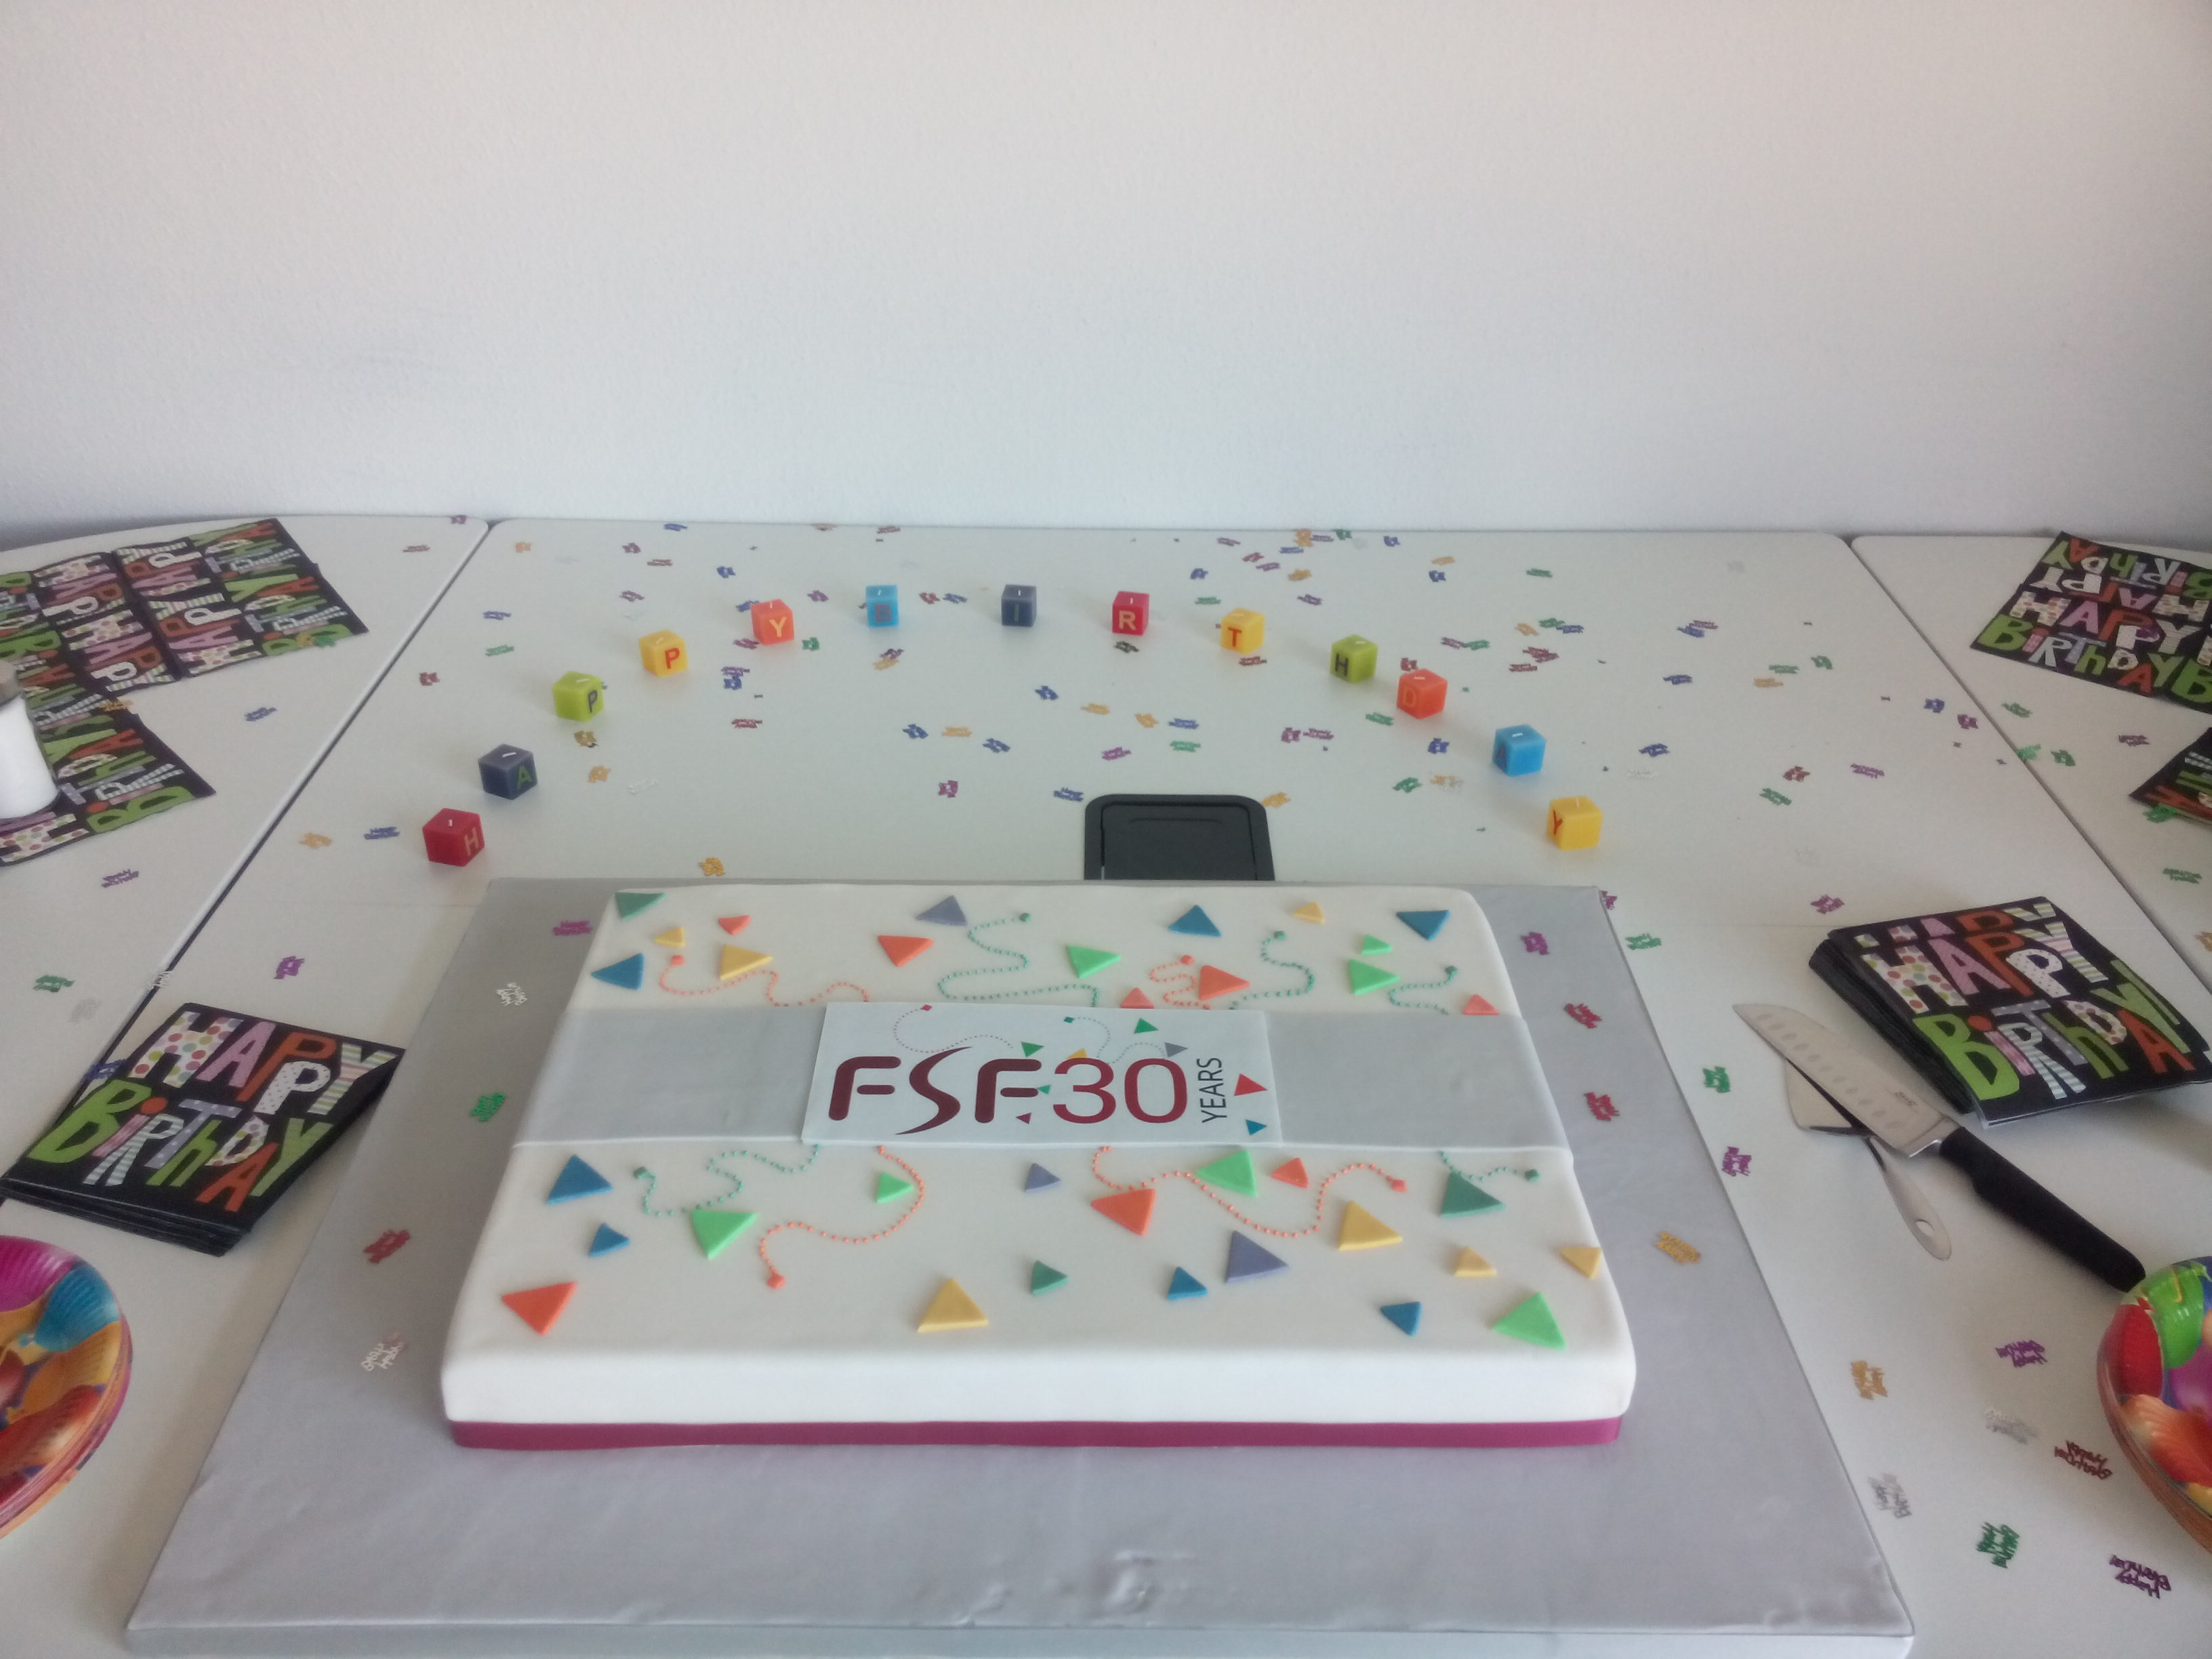 A cake with the FSF30 birthday logo on it